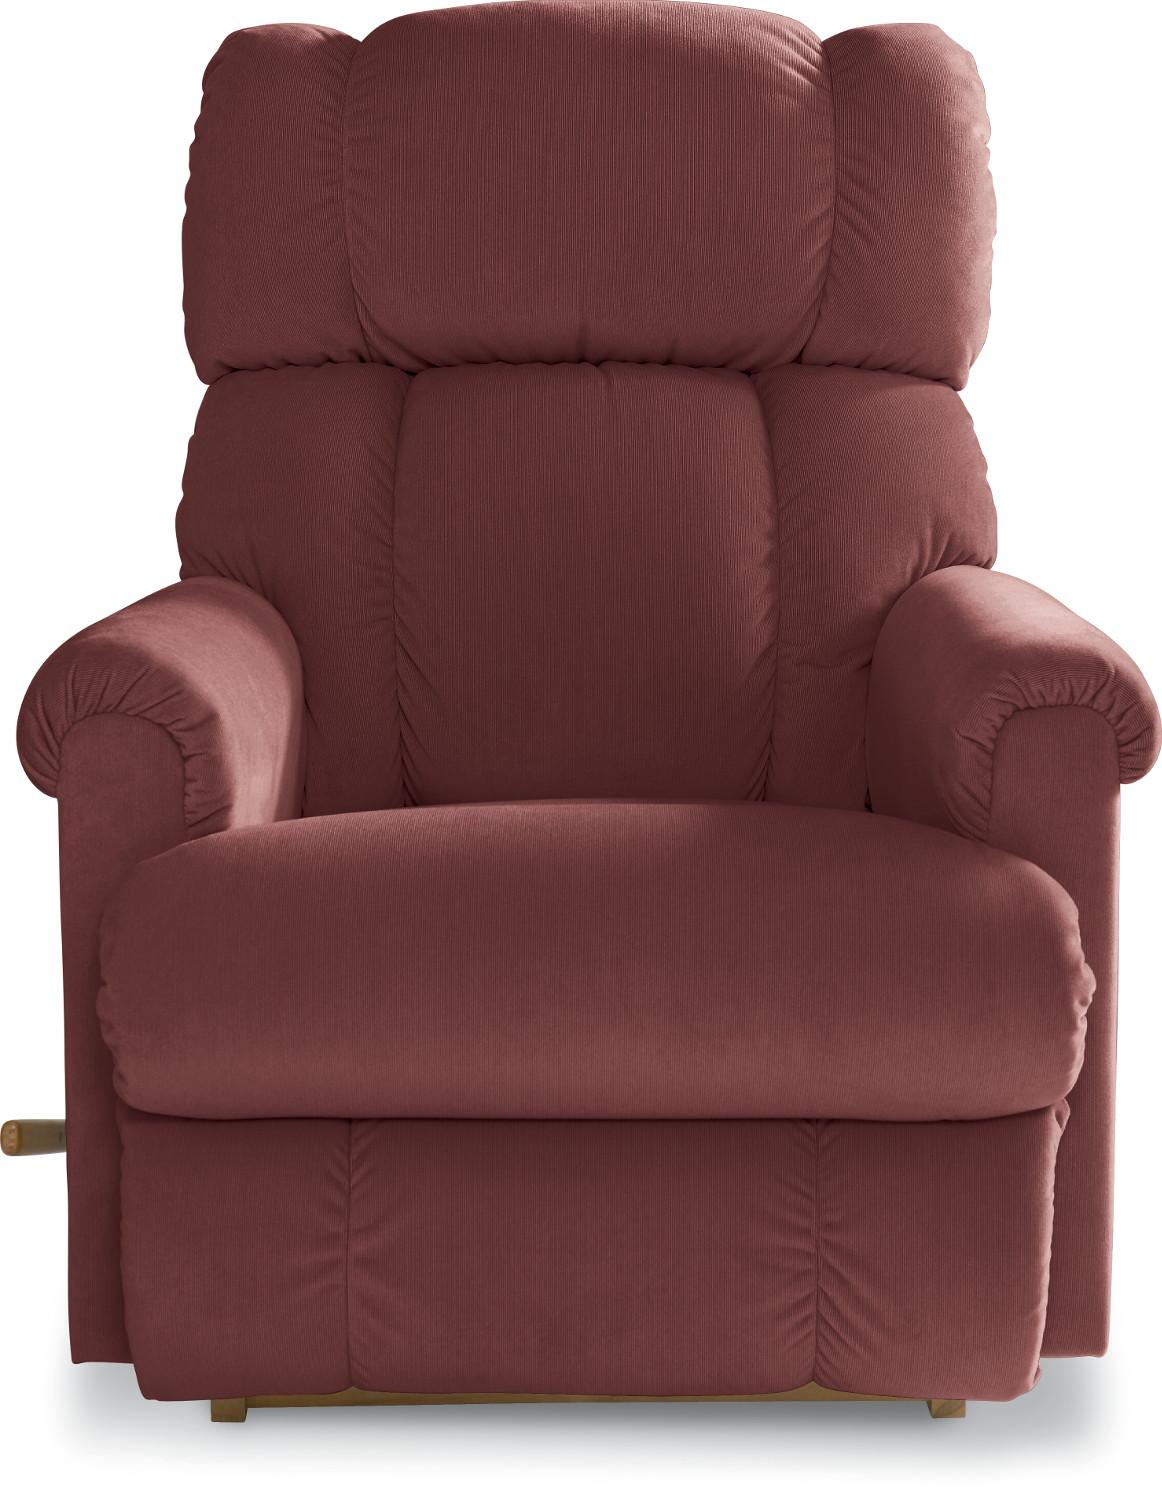 Pinnacle Rocking Recliner by La-Z-Boy at VanDrie Home Furnishings